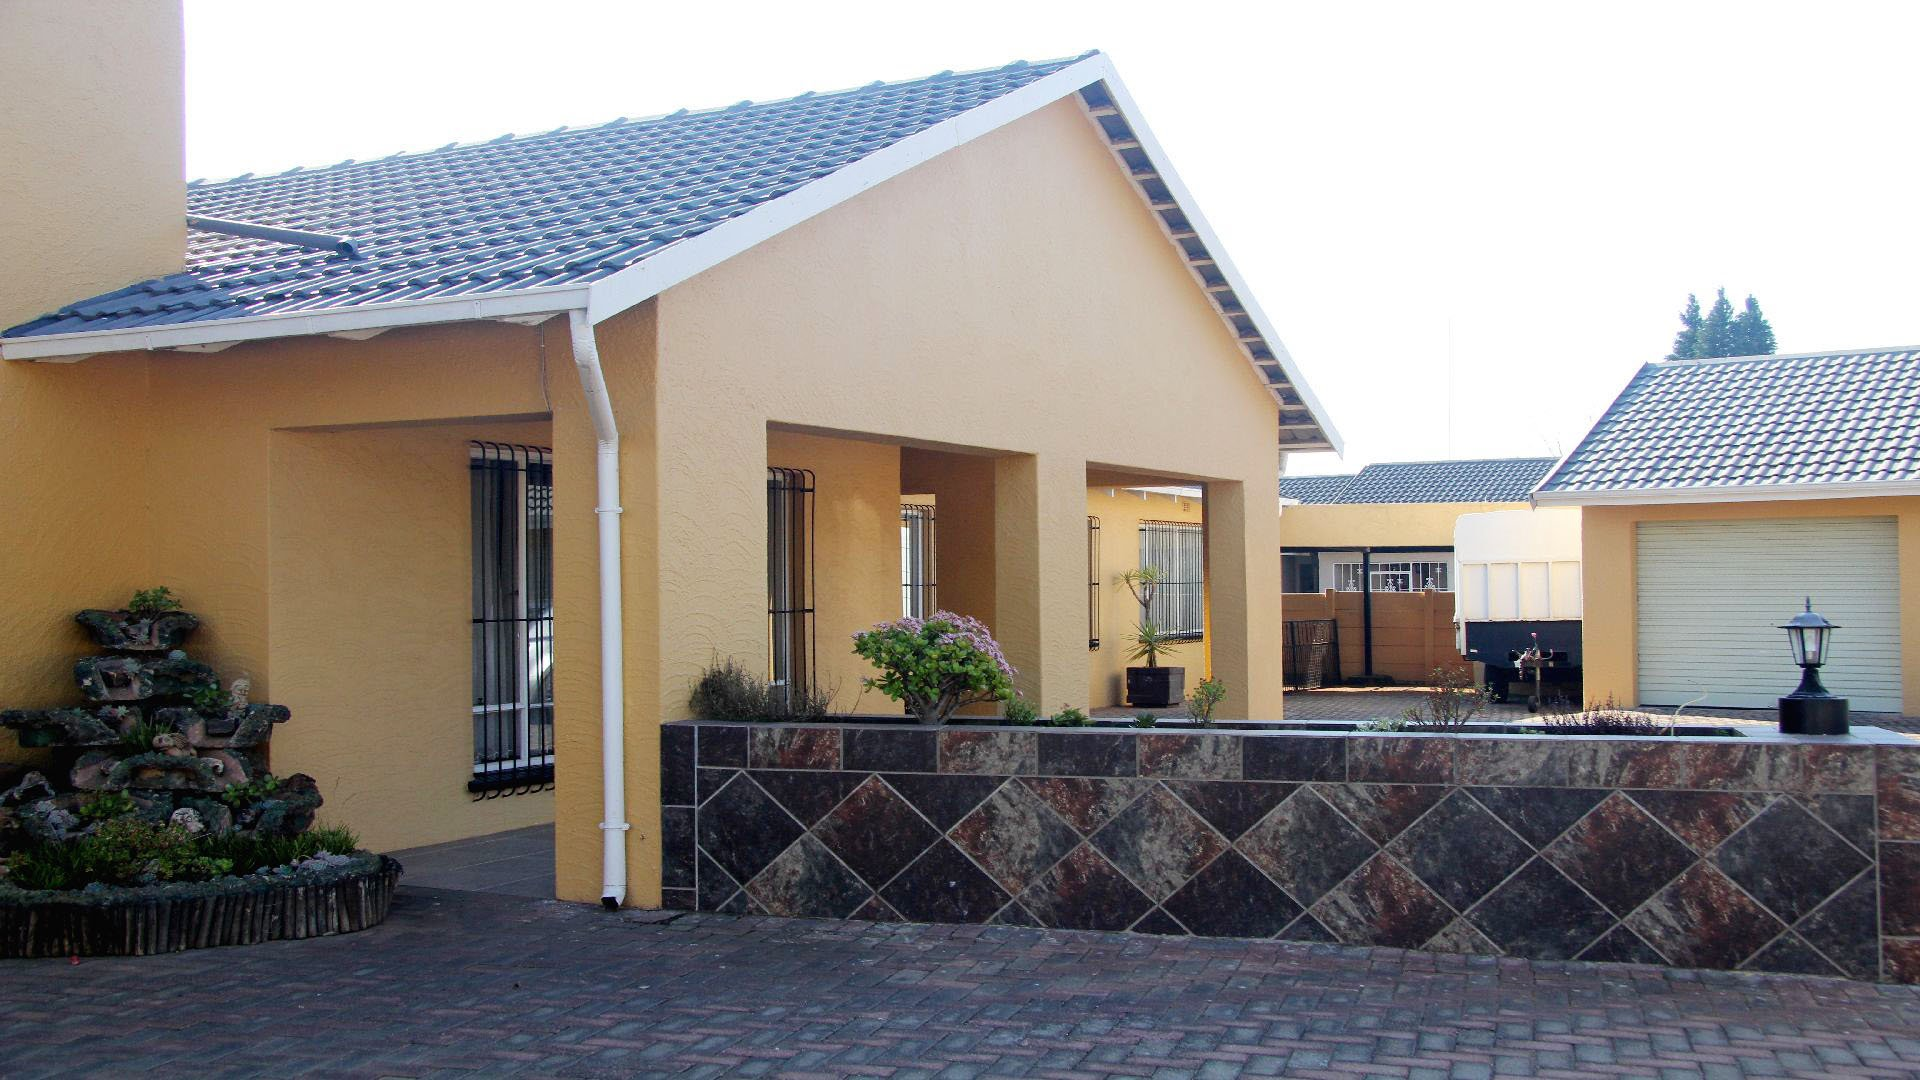 Randfontein, Helikonpark Property  | Houses For Sale Helikonpark, Helikonpark, House 4 bedrooms property for sale Price:1,700,000